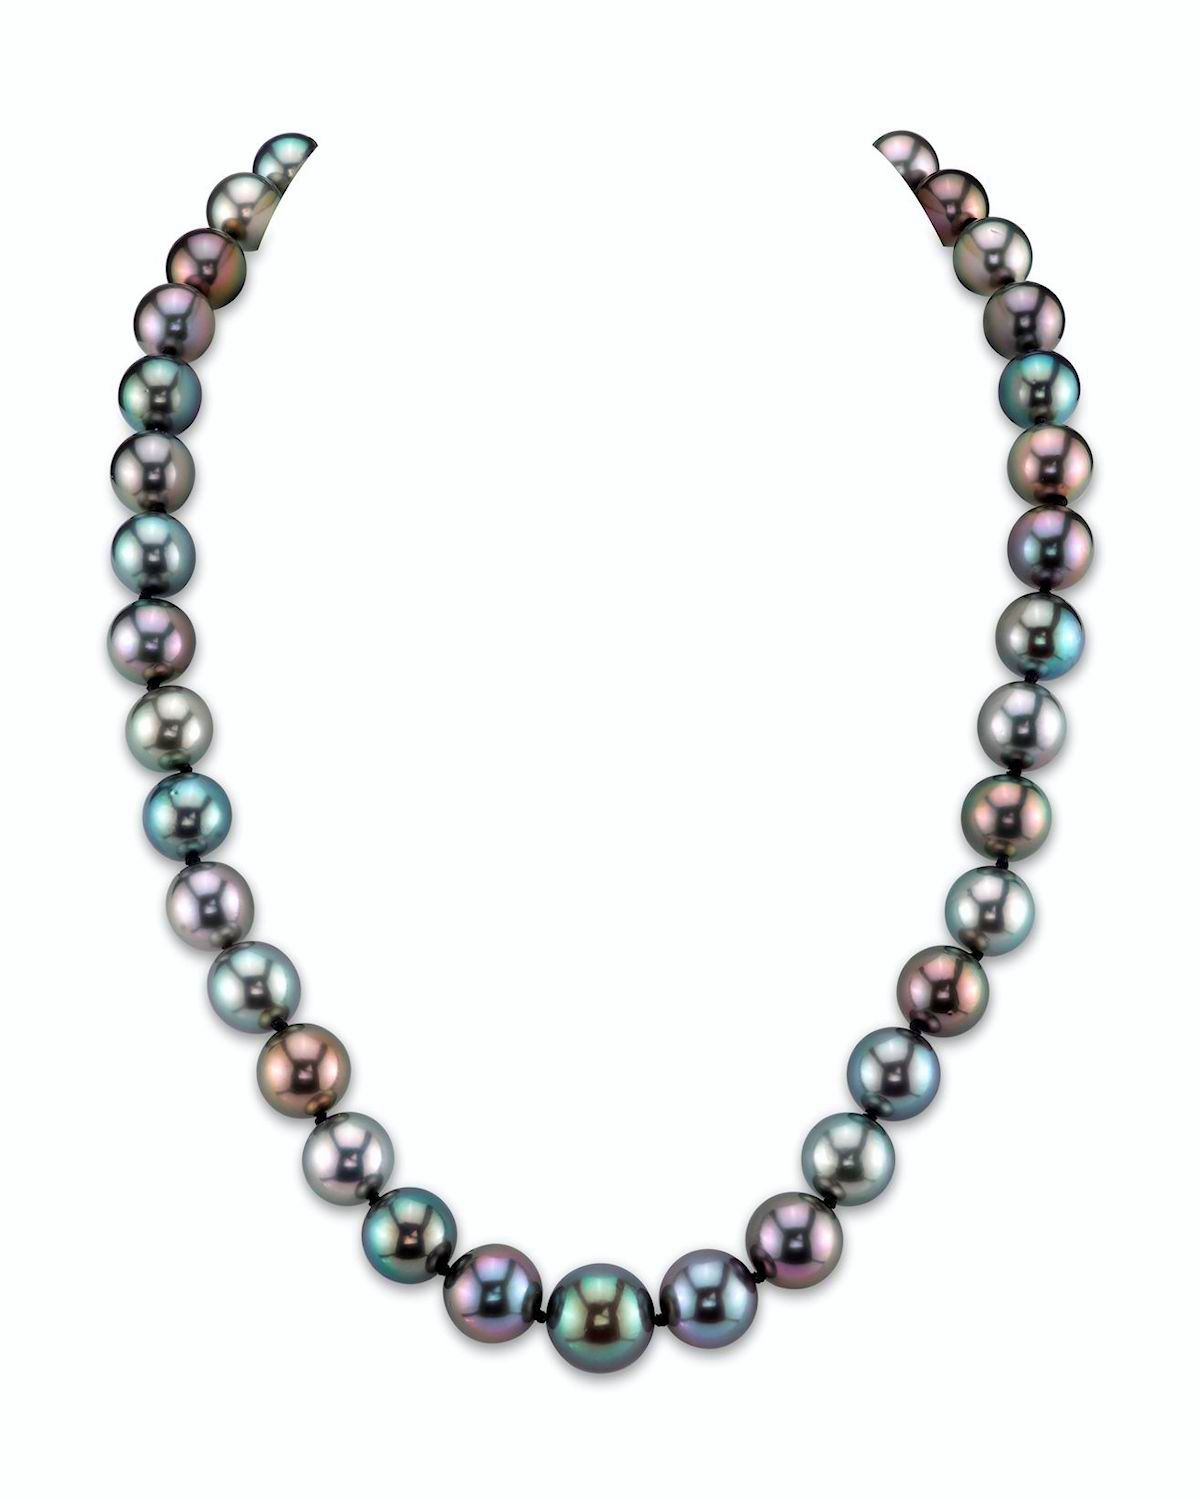 """14K Gold 9-11mm Tahitian South Sea Multicolor Cultured Pearl Necklace AAA Quality, 20"""" Length by The Pearl Source"""